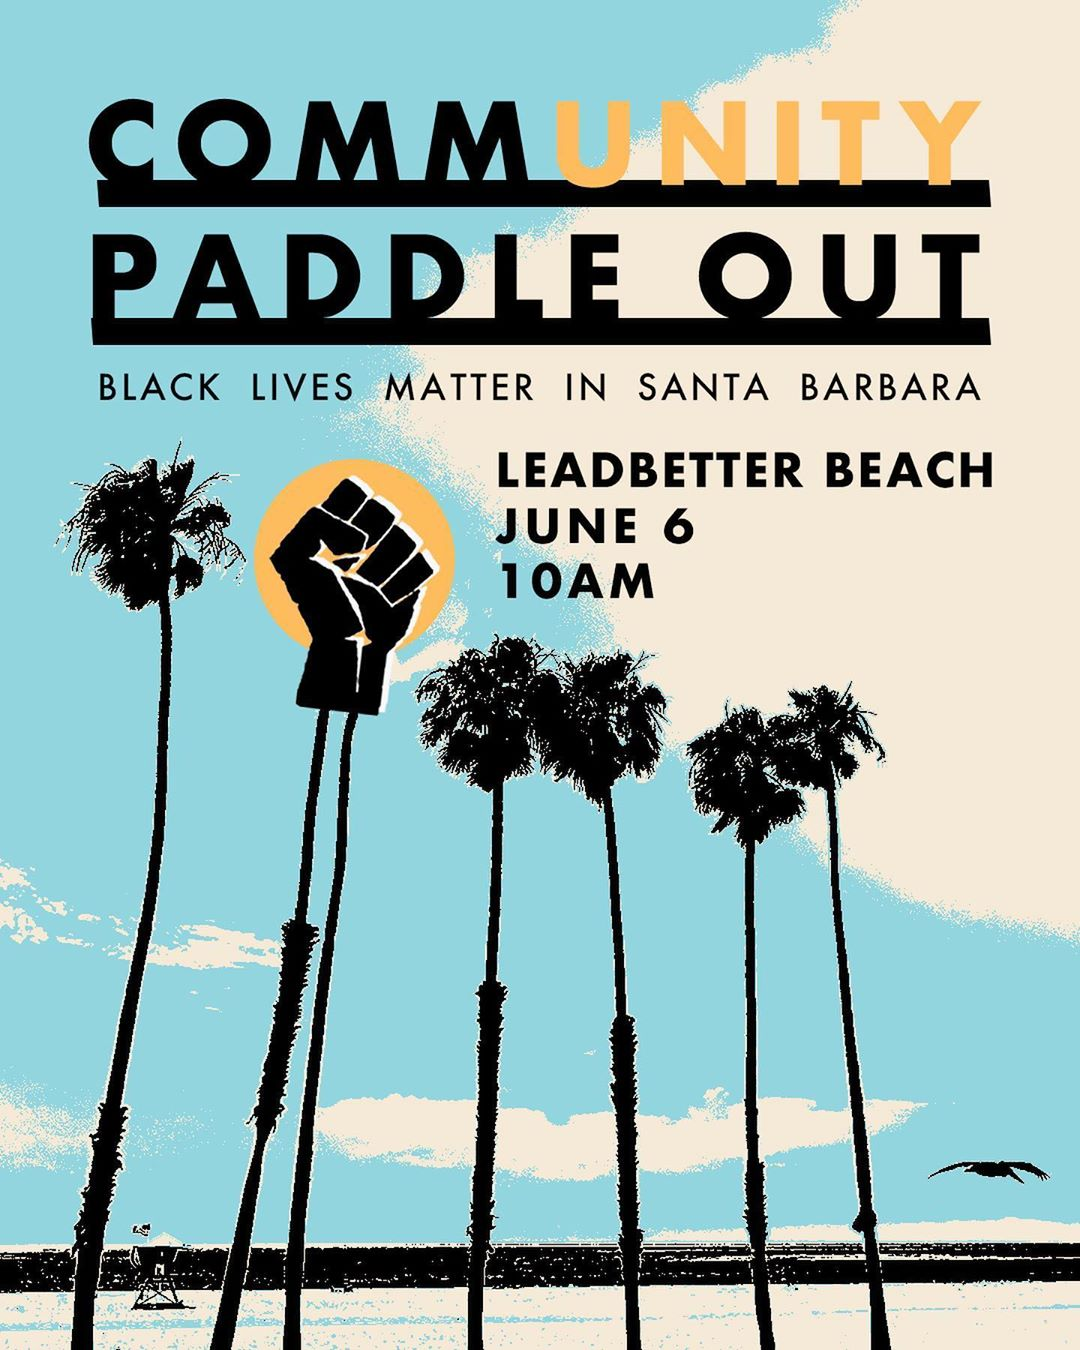 BLM Paddle Out SB Flyer